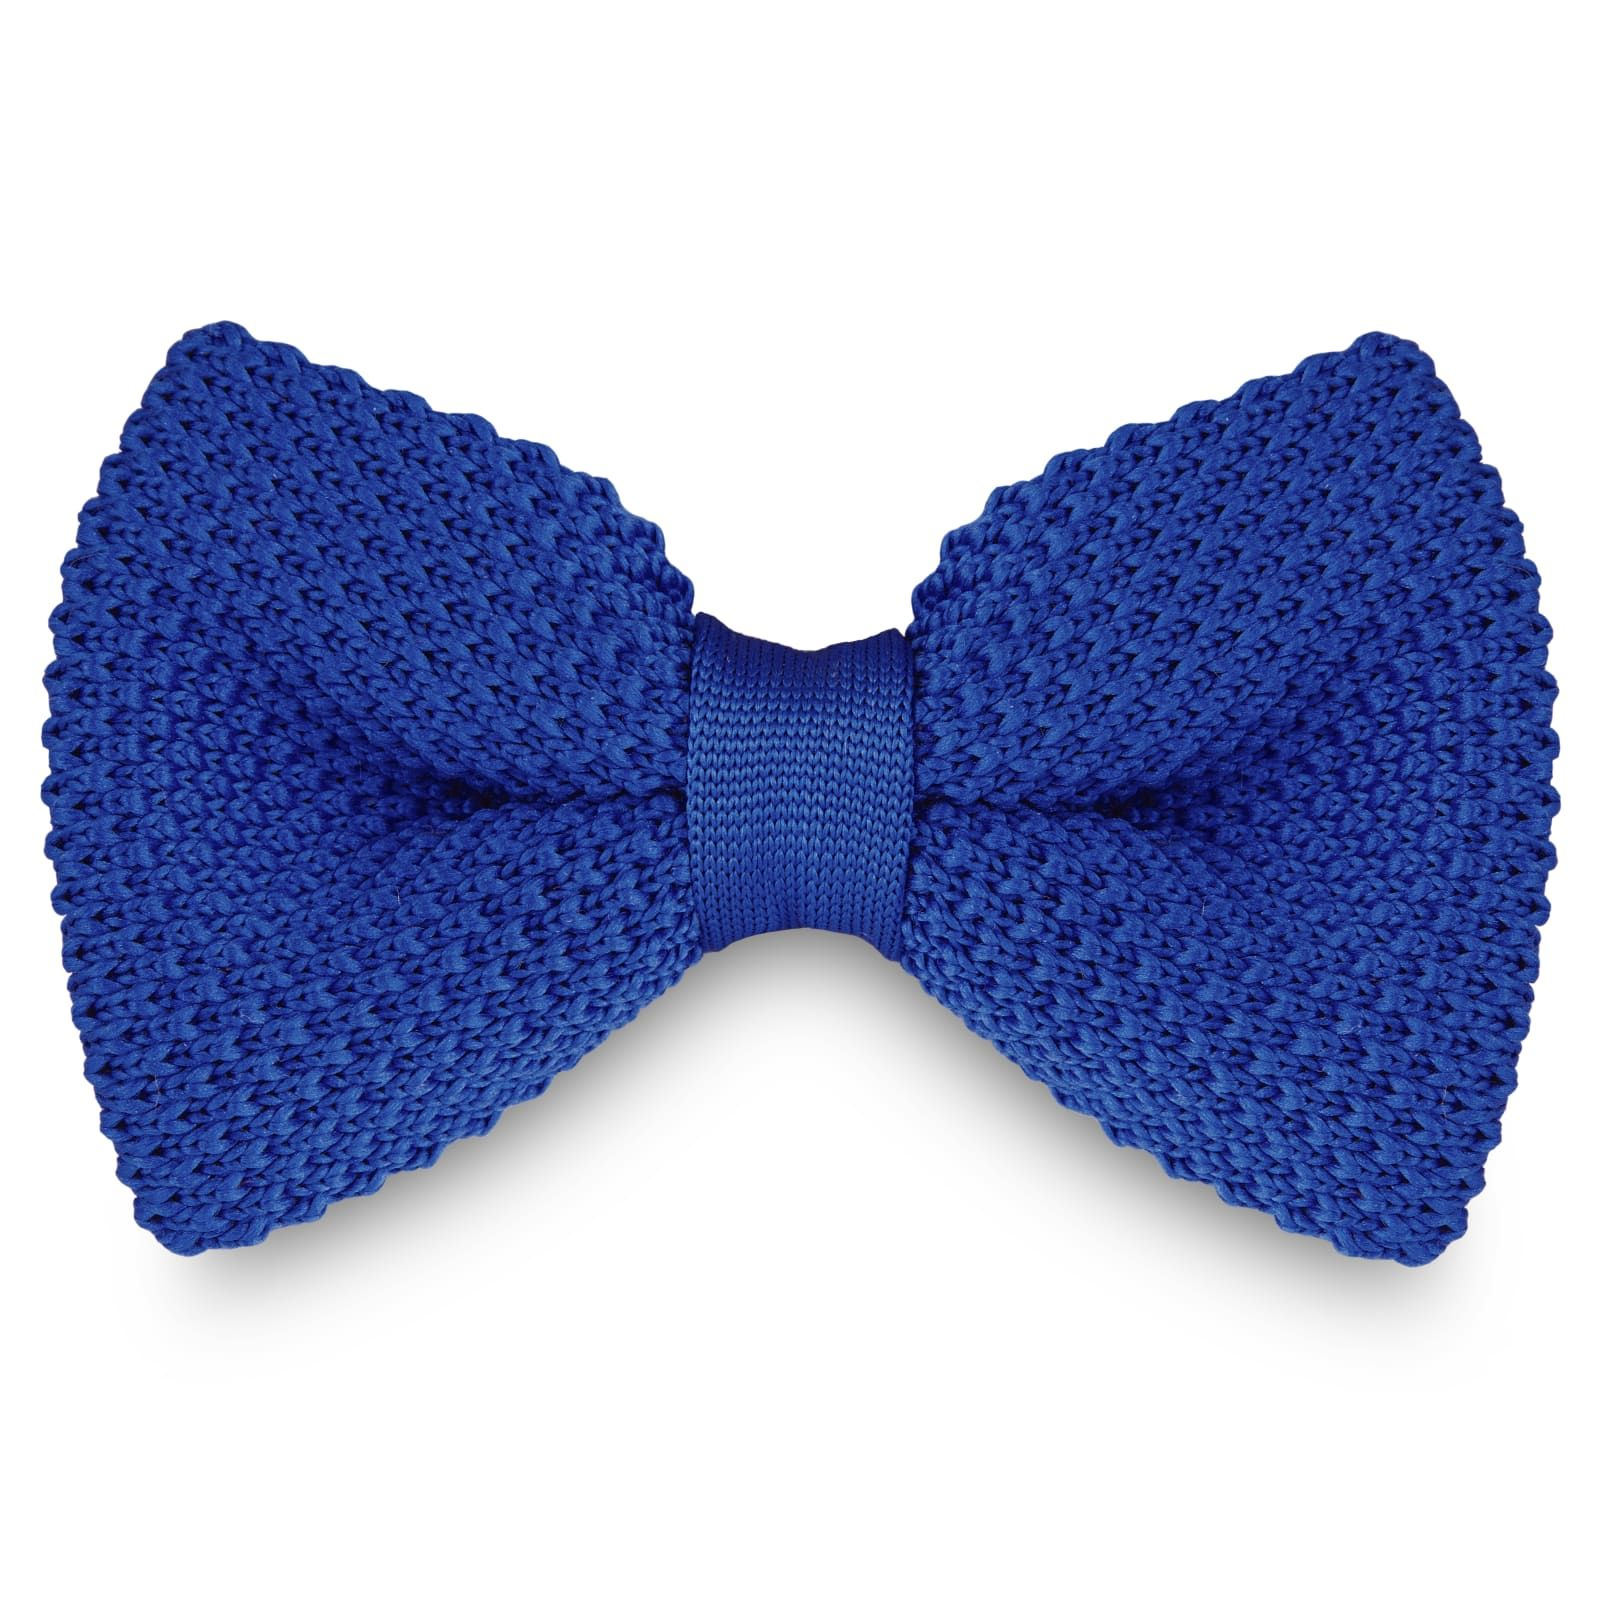 Photo of Blue Knitted Bow Tie | In stock! | Tailor Toki